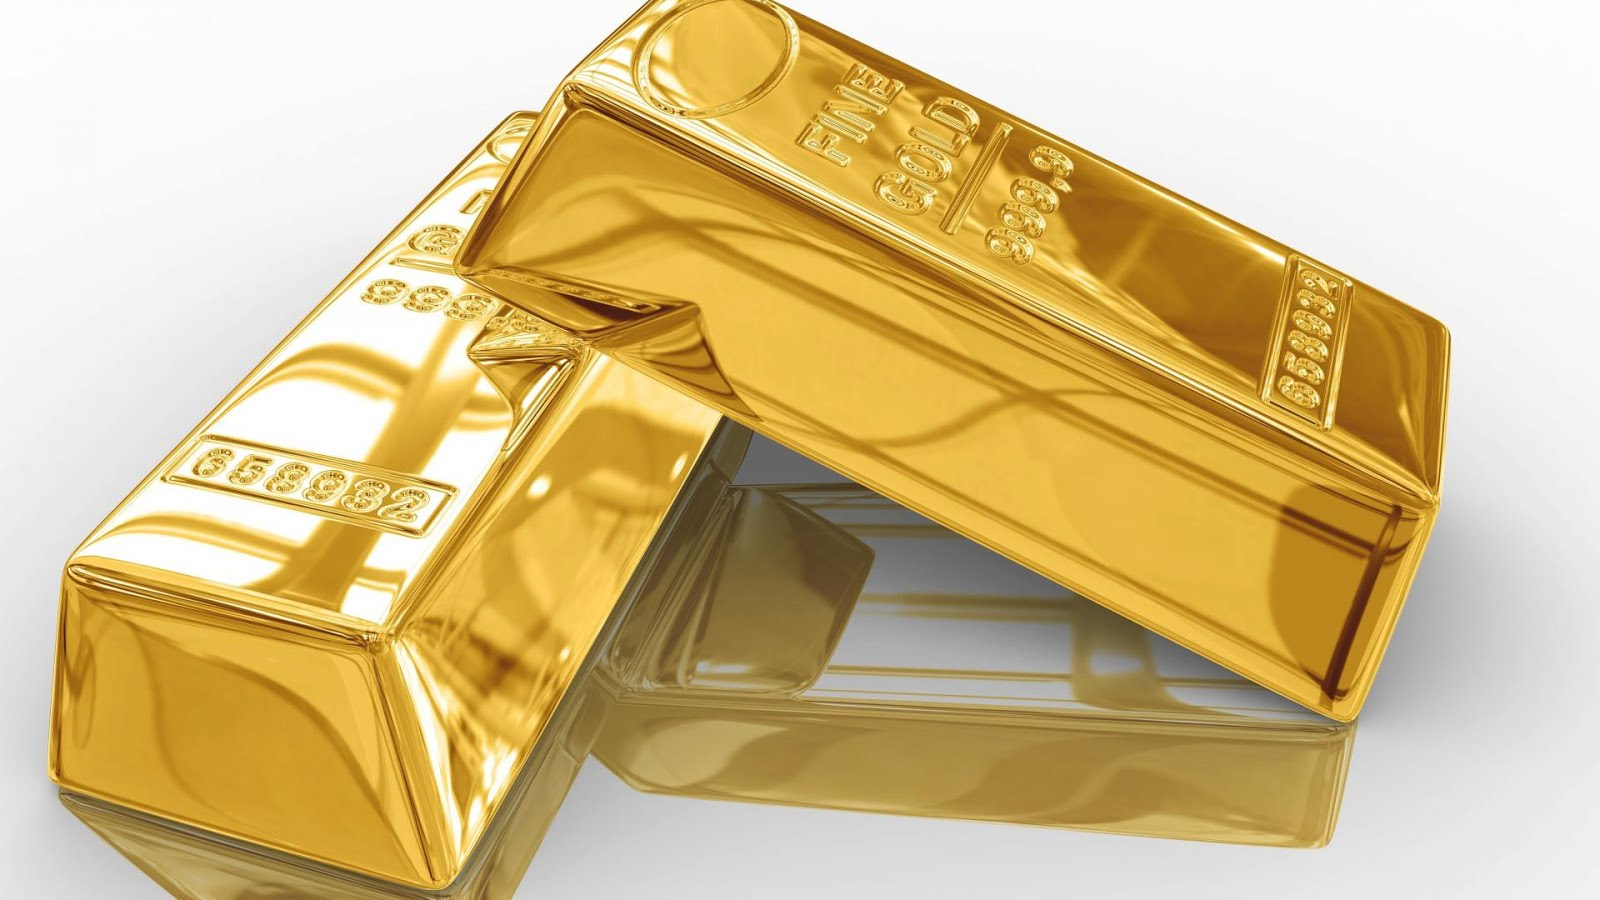 Hd wallpapers gold things 3d hd wallpaper for 3d wallpaper gold